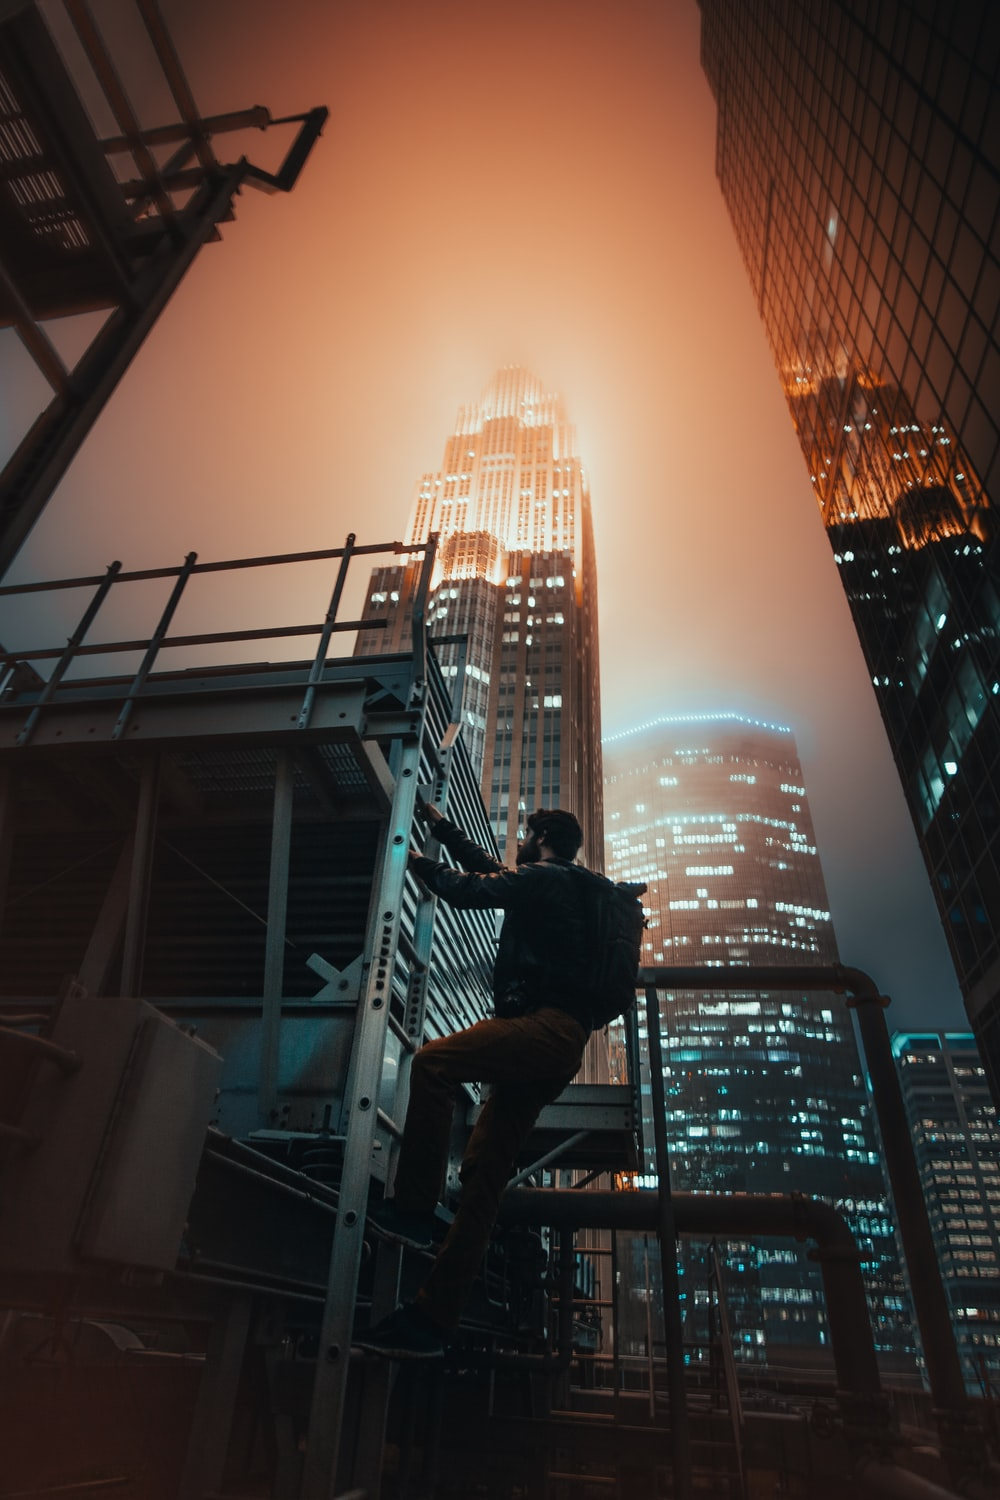 man climbing staircase by the building photo